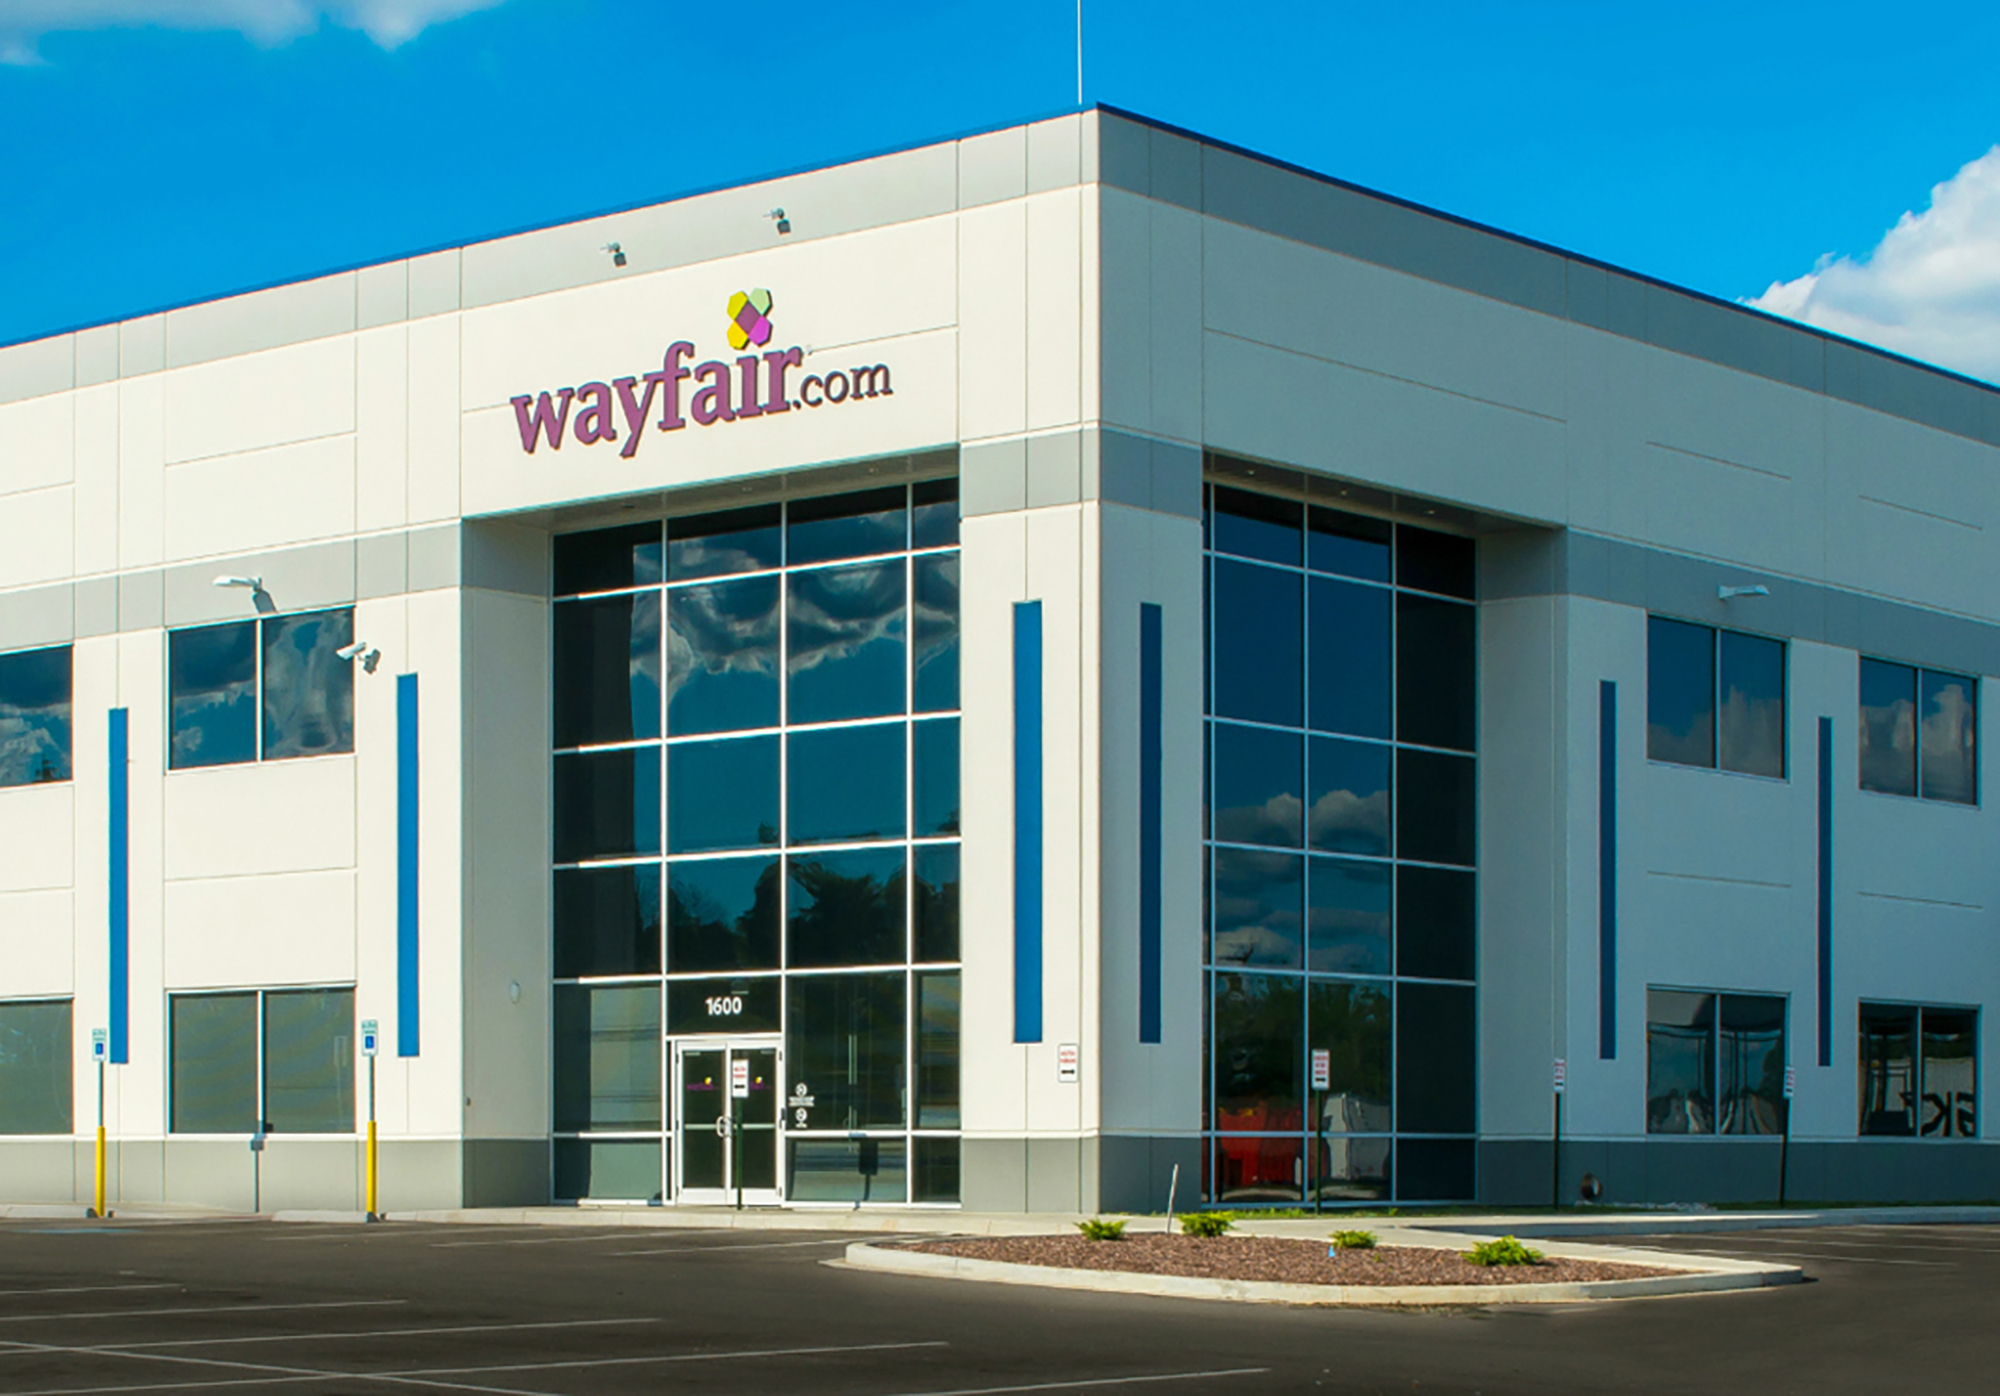 Construction Approved For 49 Million Wayfair Distribution Center Jax Daily Record Jacksonville Daily Record Jacksonville Florida